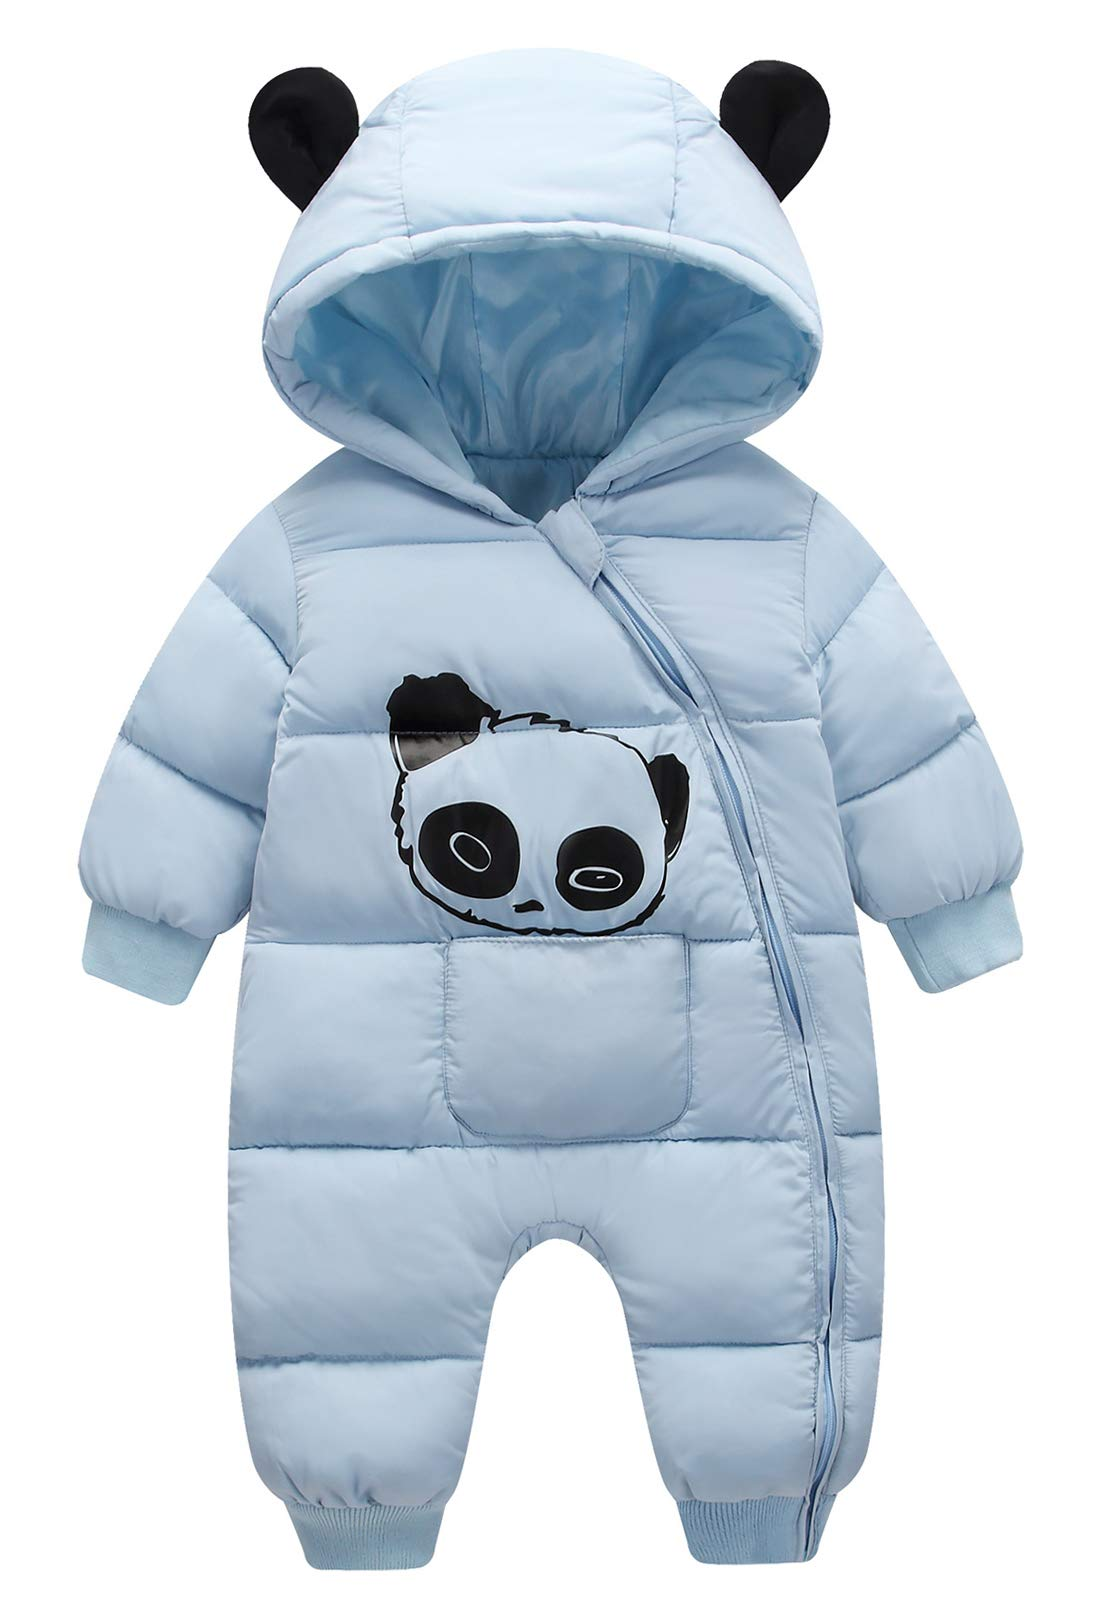 Happy Cherry Toddler Cotton Romper Onesie Snowsuits for Boys Winter Soft Puffer Jumpsuit Infant Outerwear